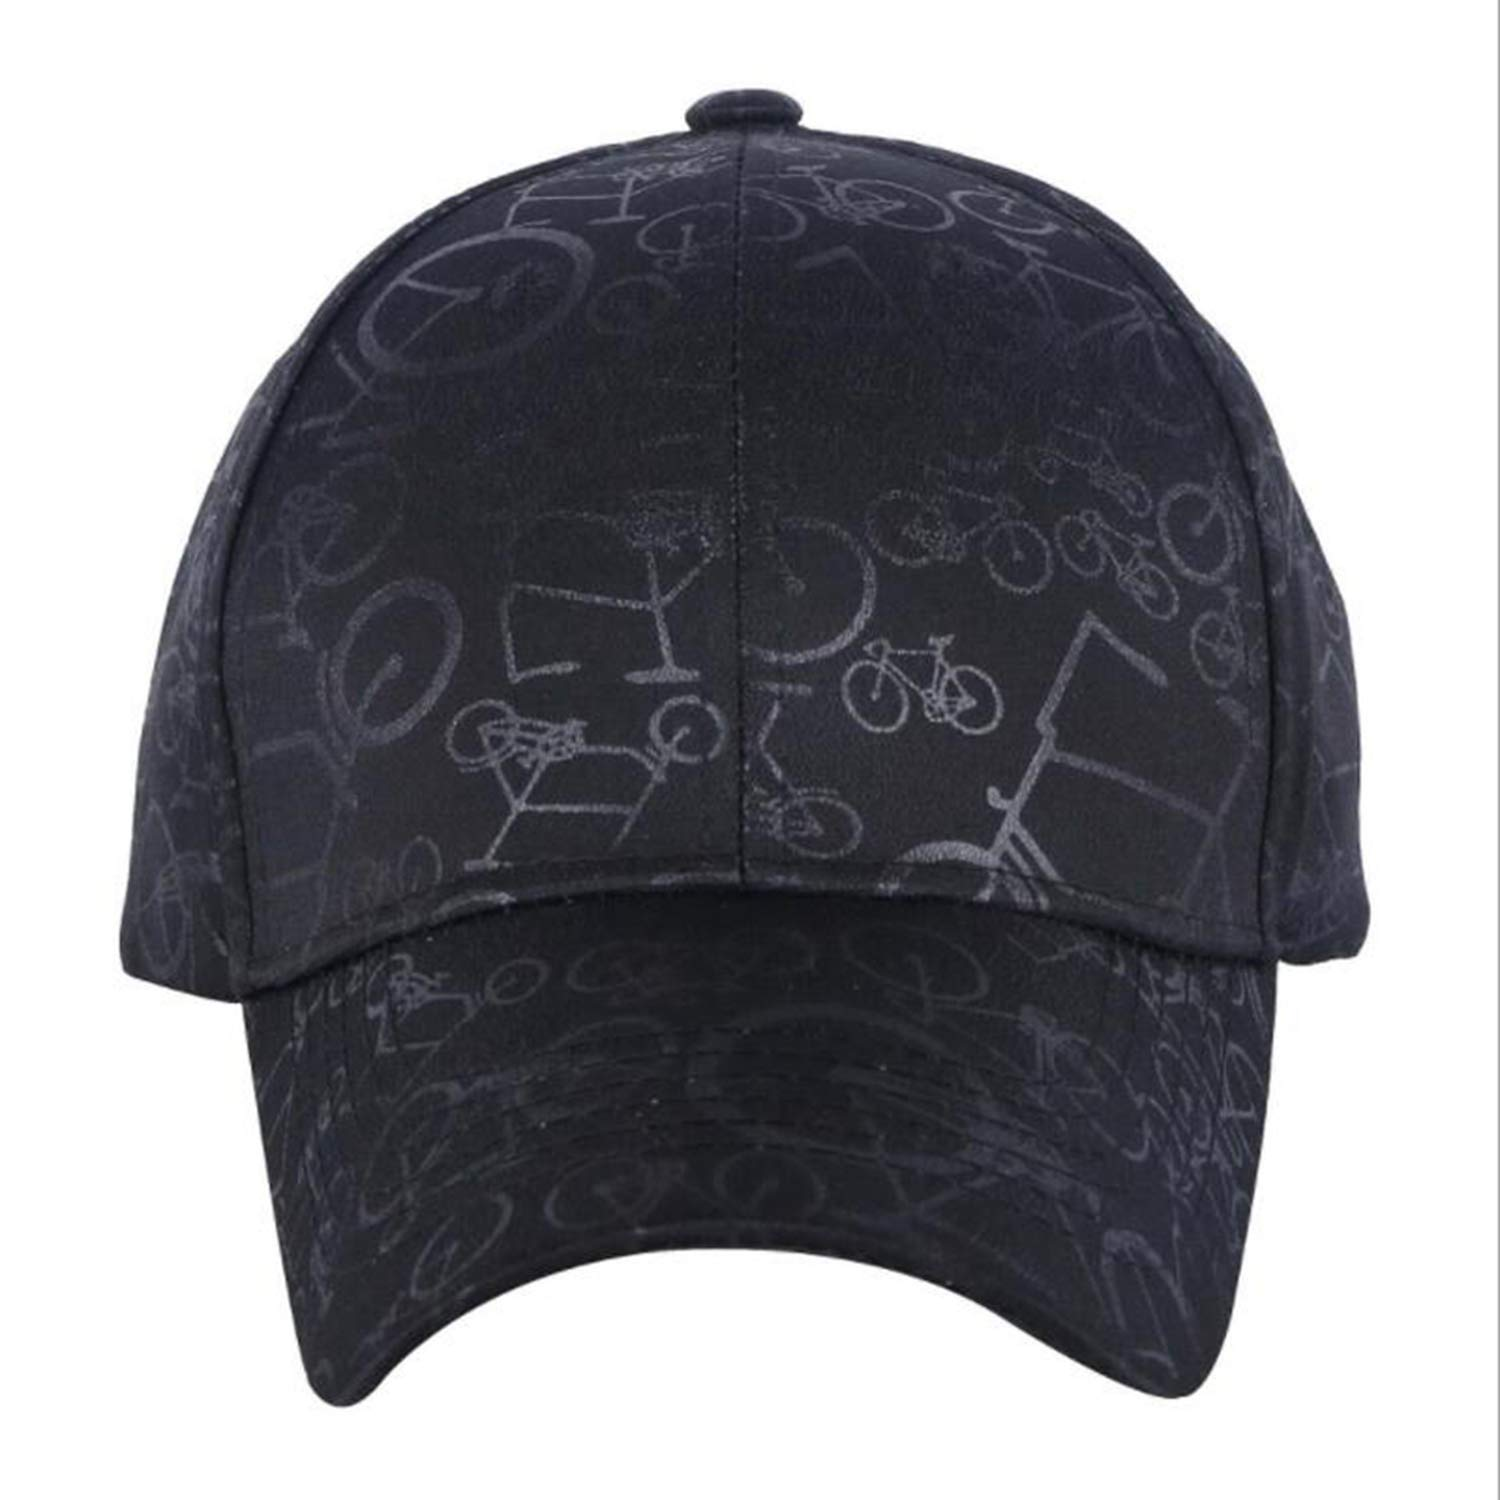 Fashion Youth Bike Tennis Korean Stylish caps Men Casquette Outdoor Sports Hats Snapback Female Baseball caps